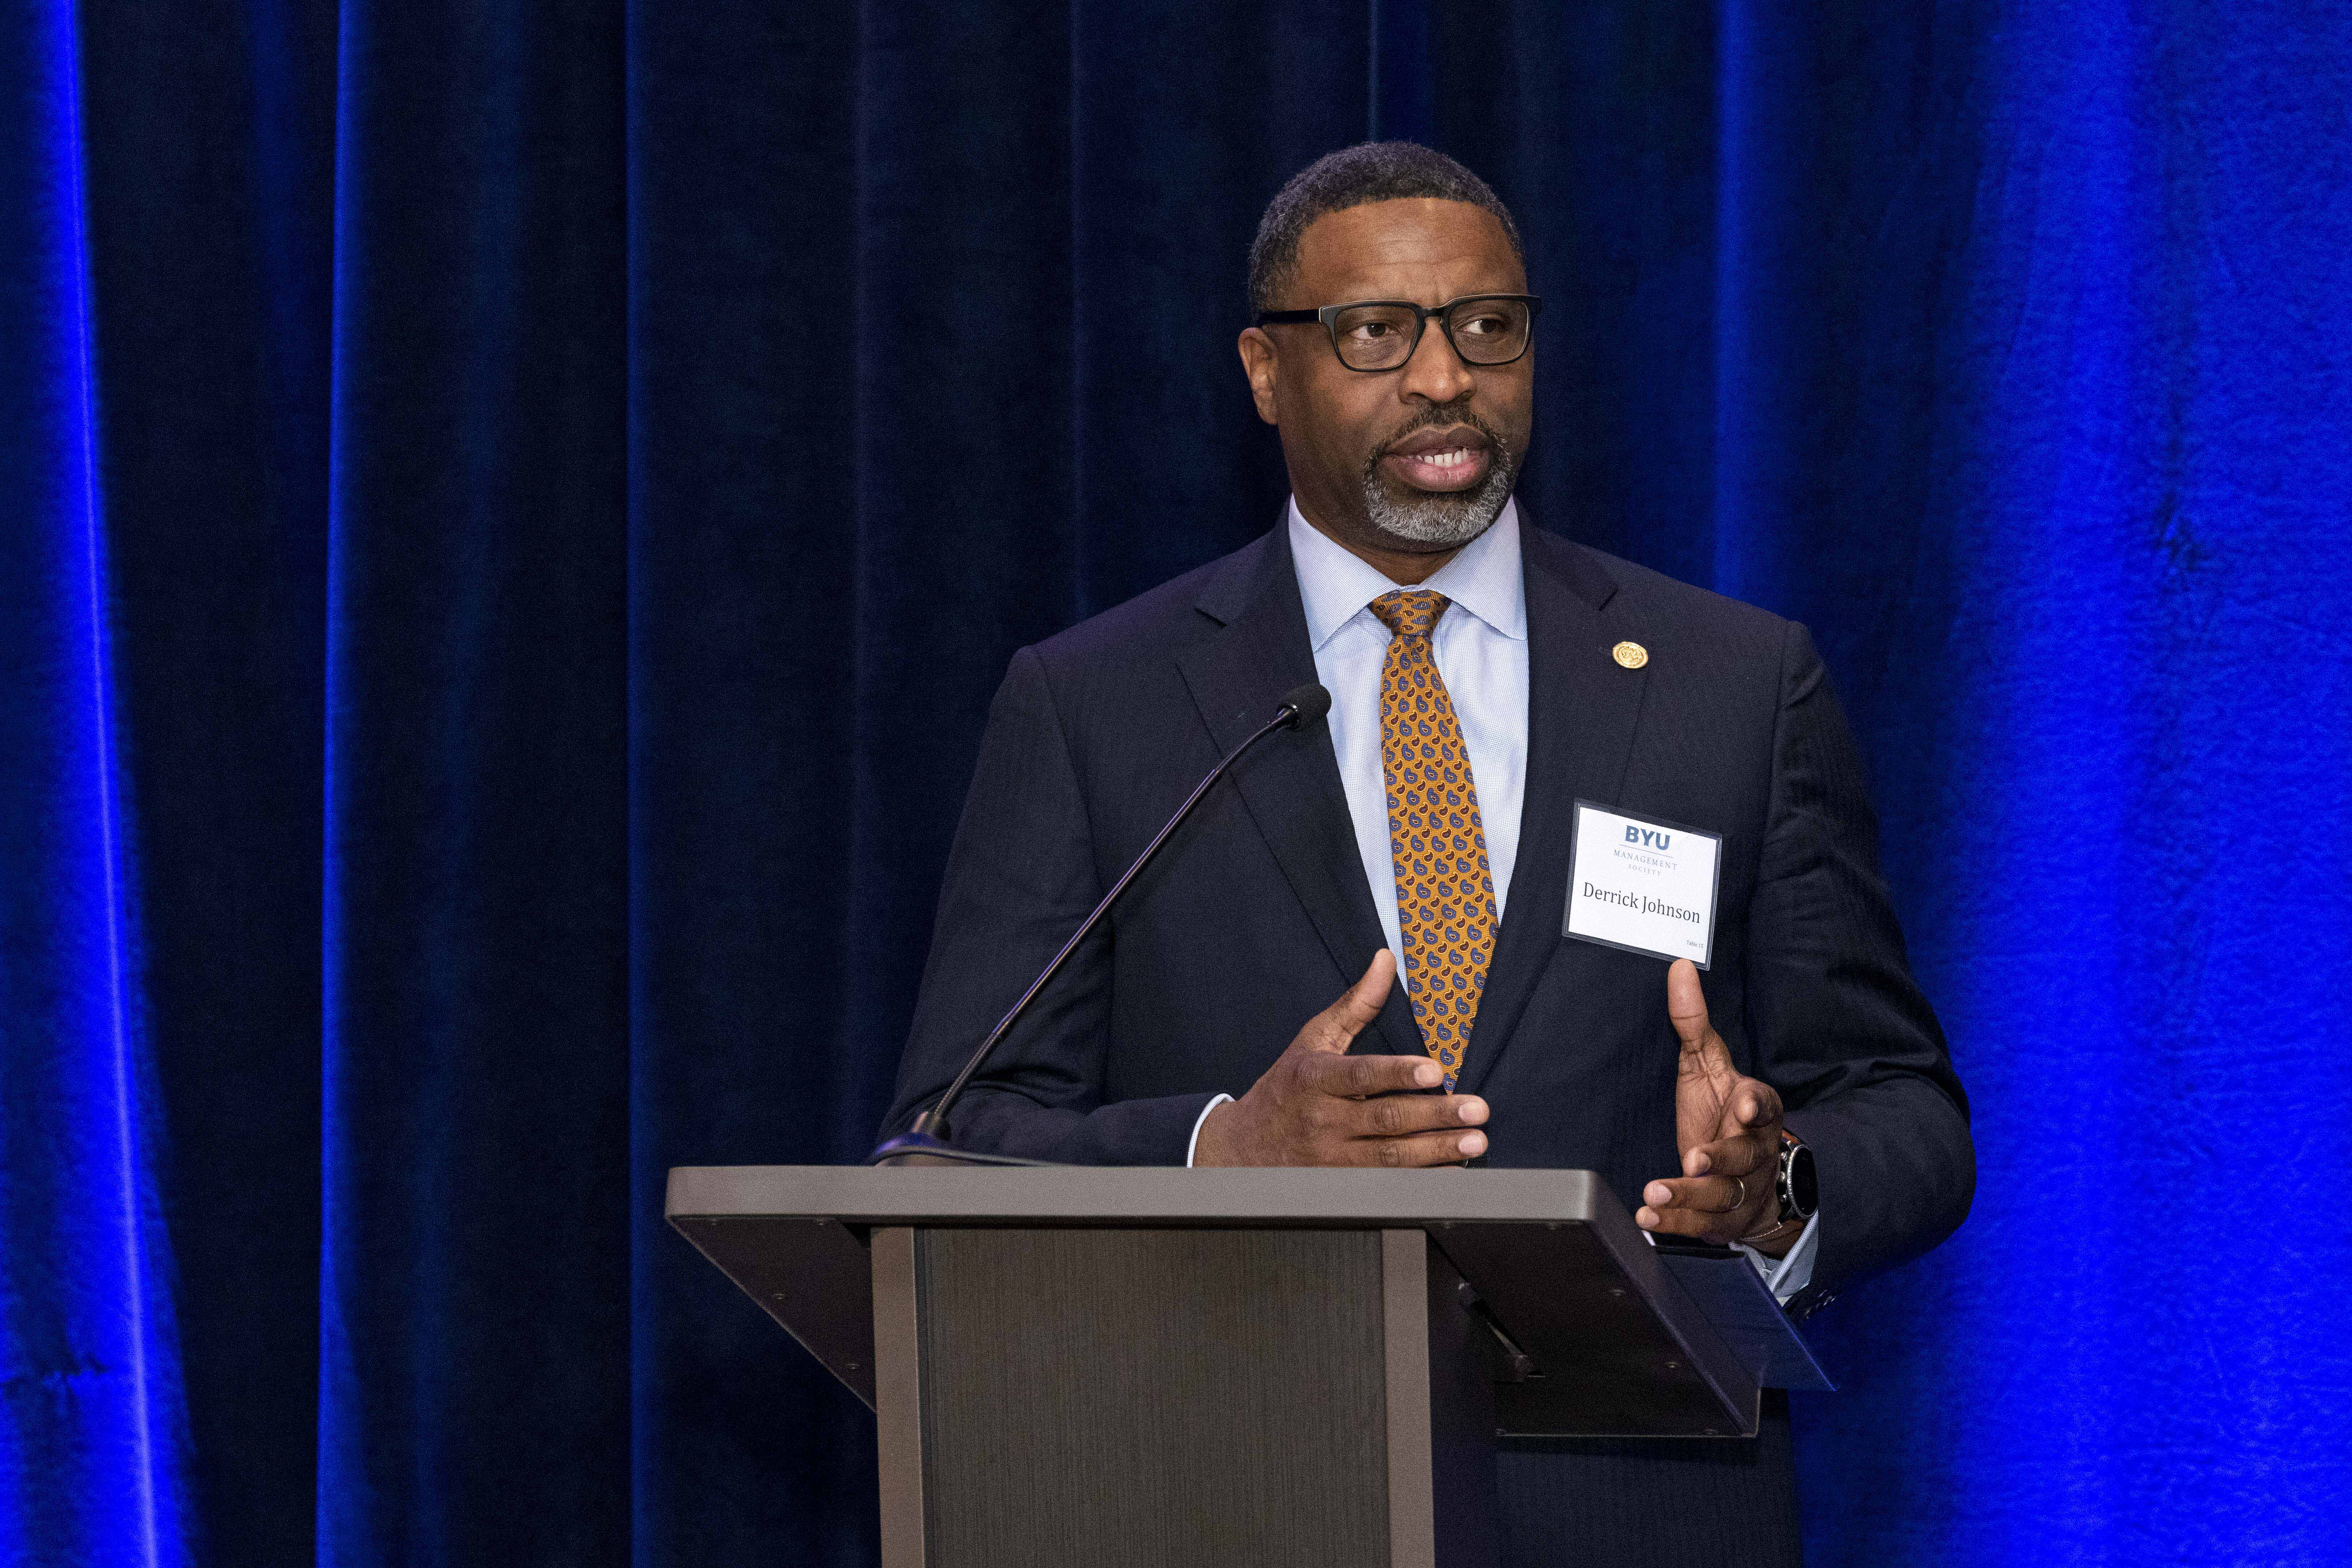 NAACP President and CEO Derrick Johnson speaks to the BYU Management Society event in Washington, D.C., May 11, 2019.